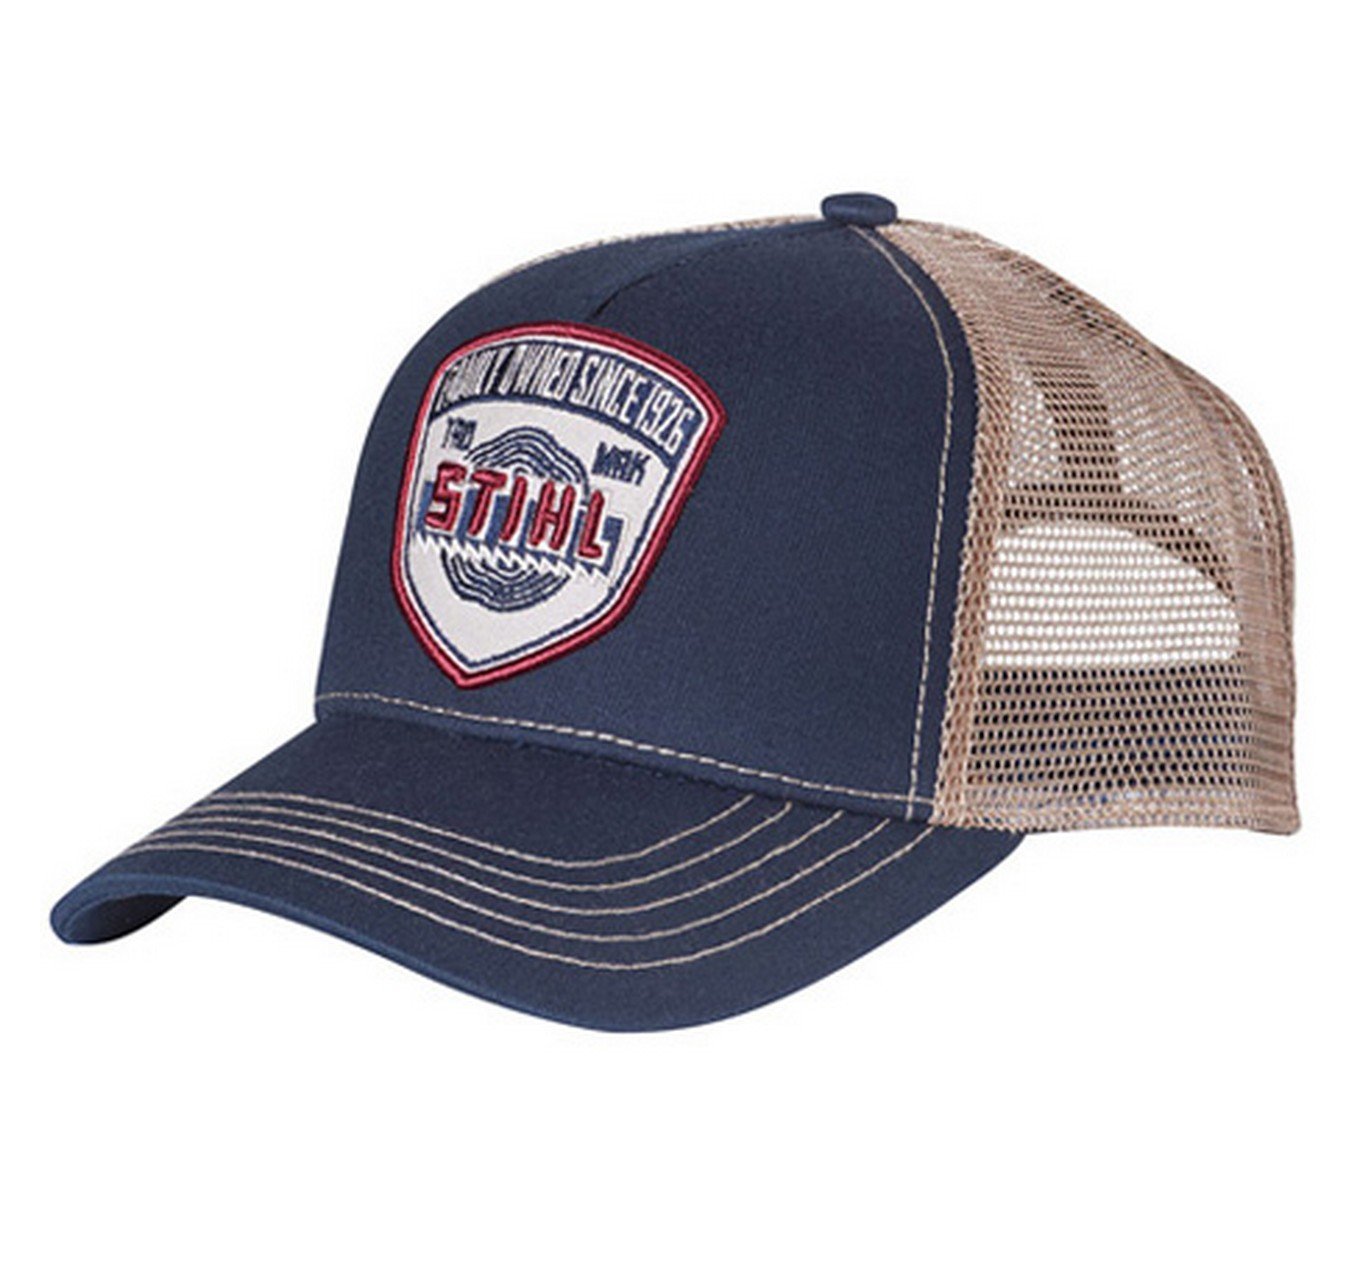 HERITAGE Family Owned Cap